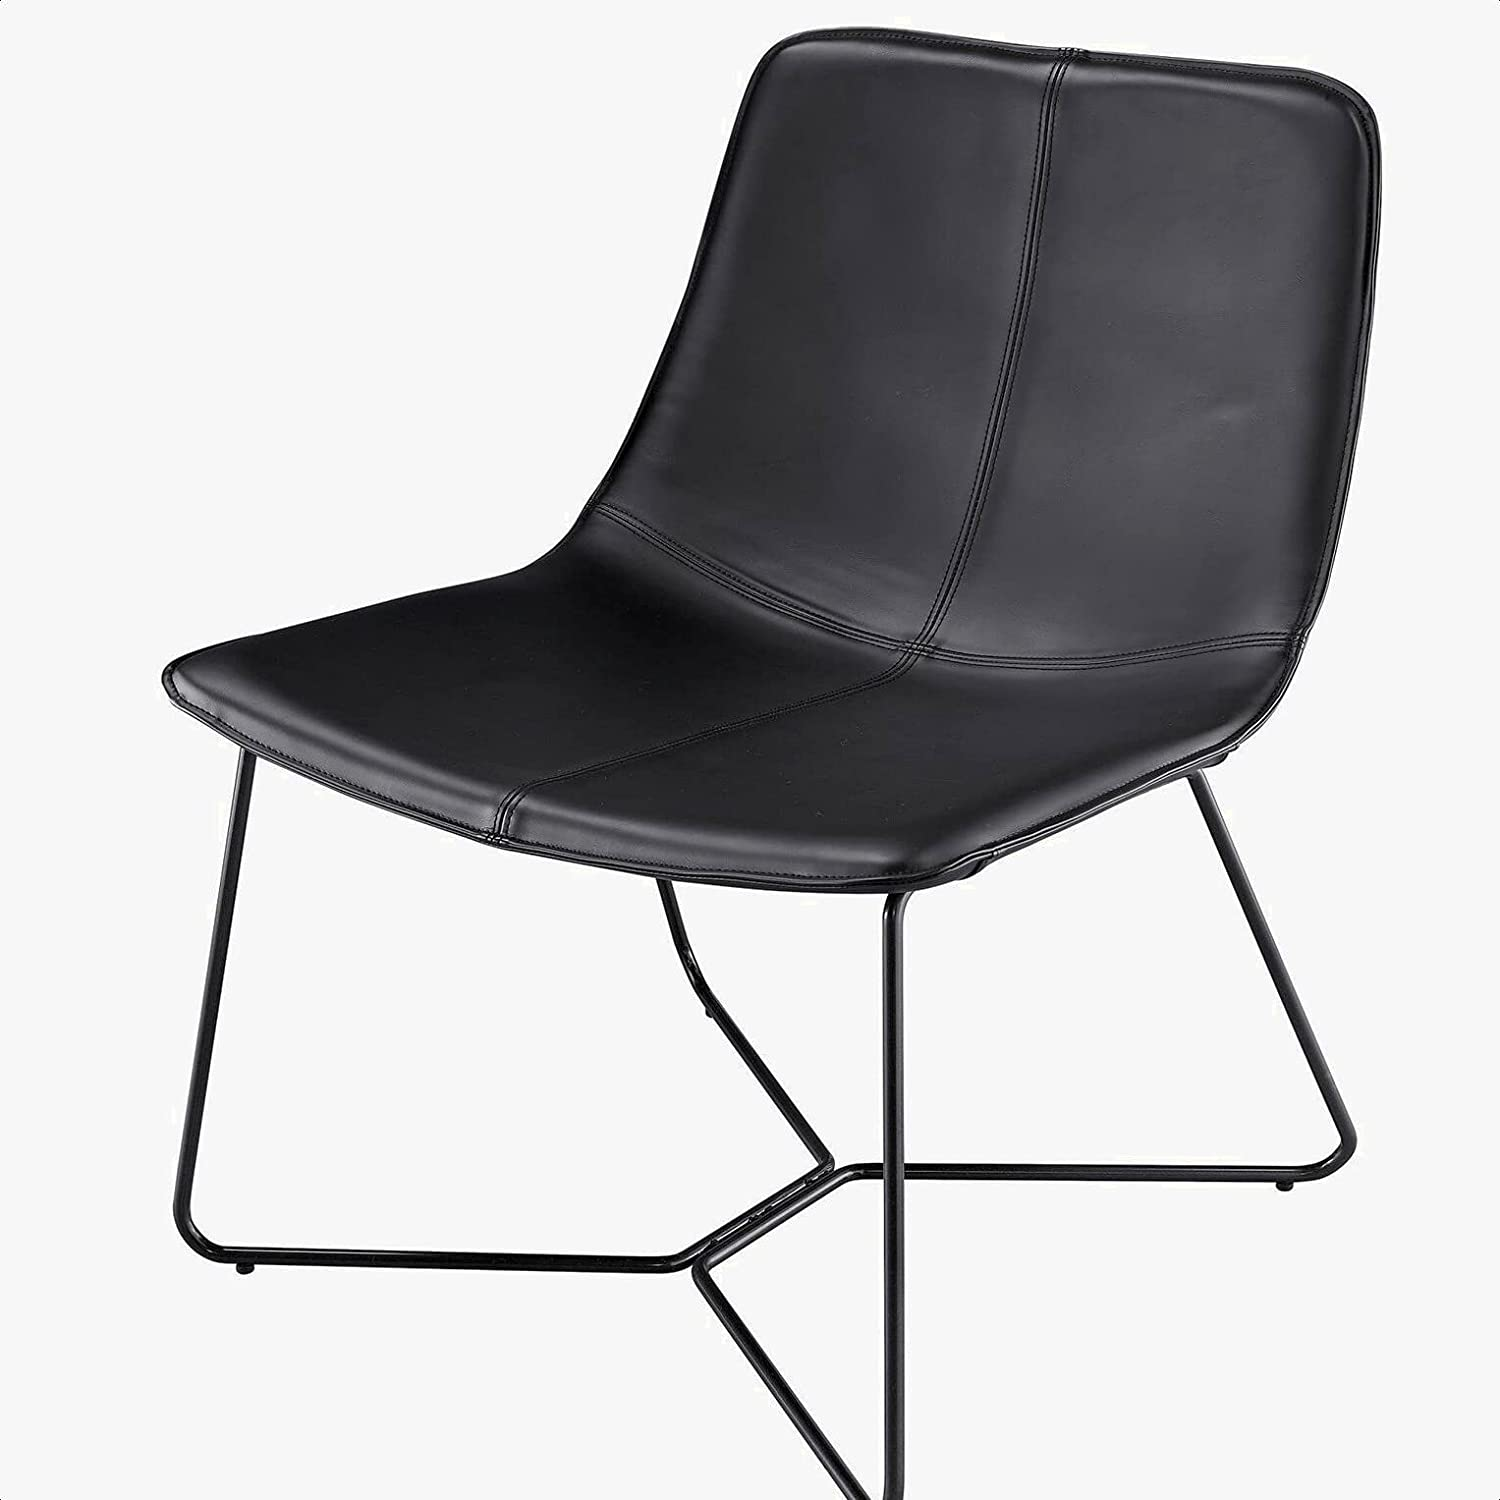 Rathburn PU Leather Lounge Chair H service Swi Dimensions: 16'''' Max 64% OFF Back